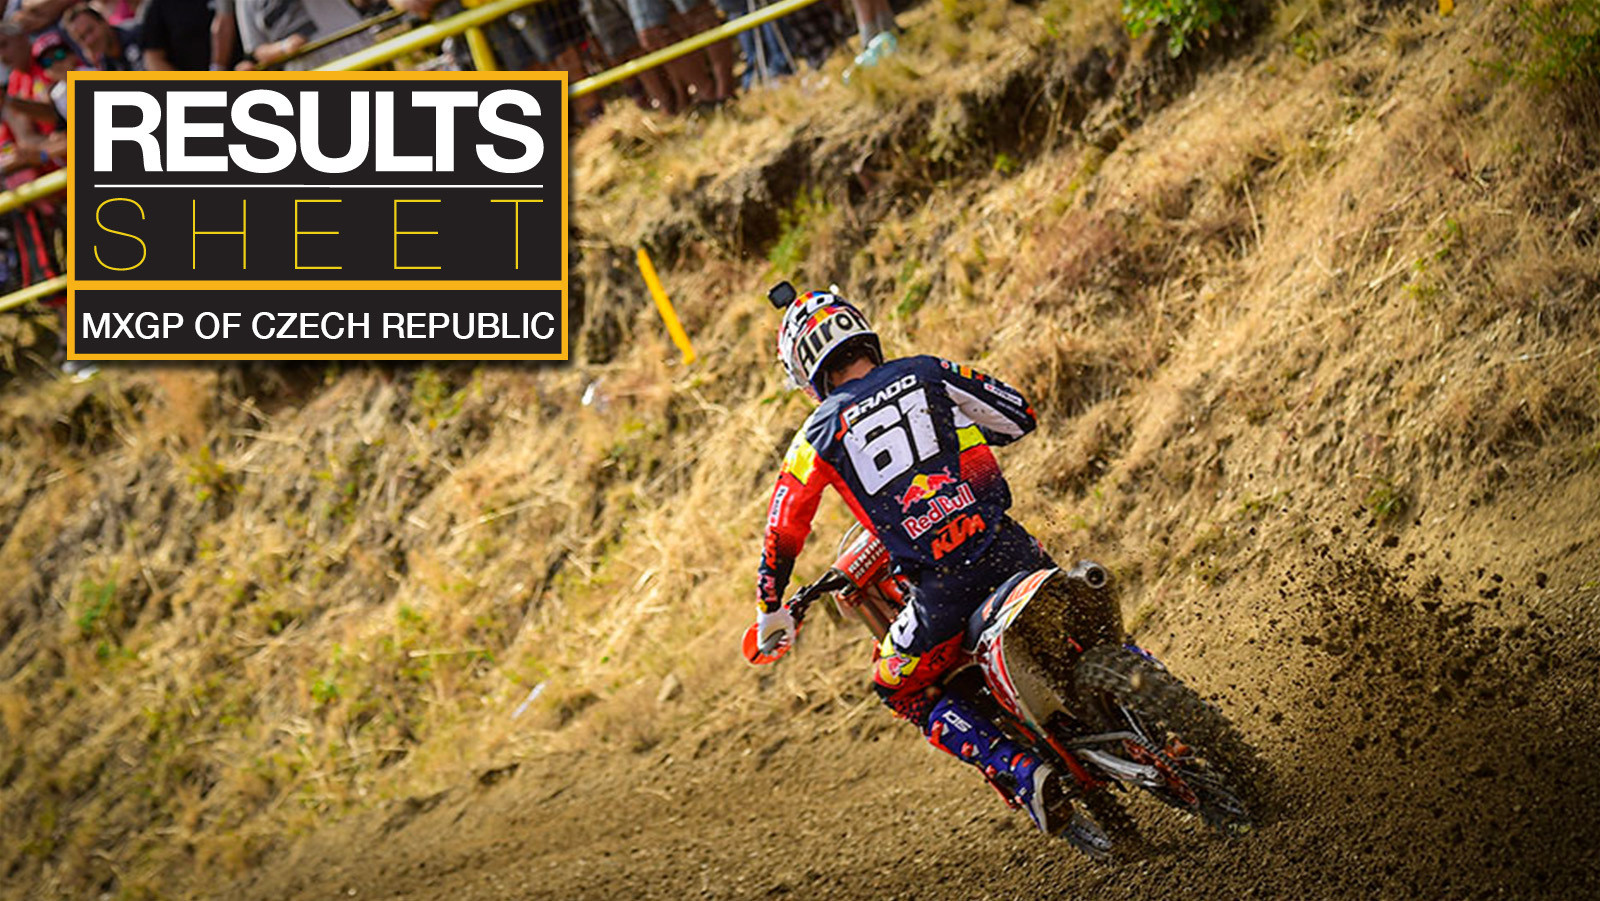 Results Sheet: 2019 MXGP of Czech Republic